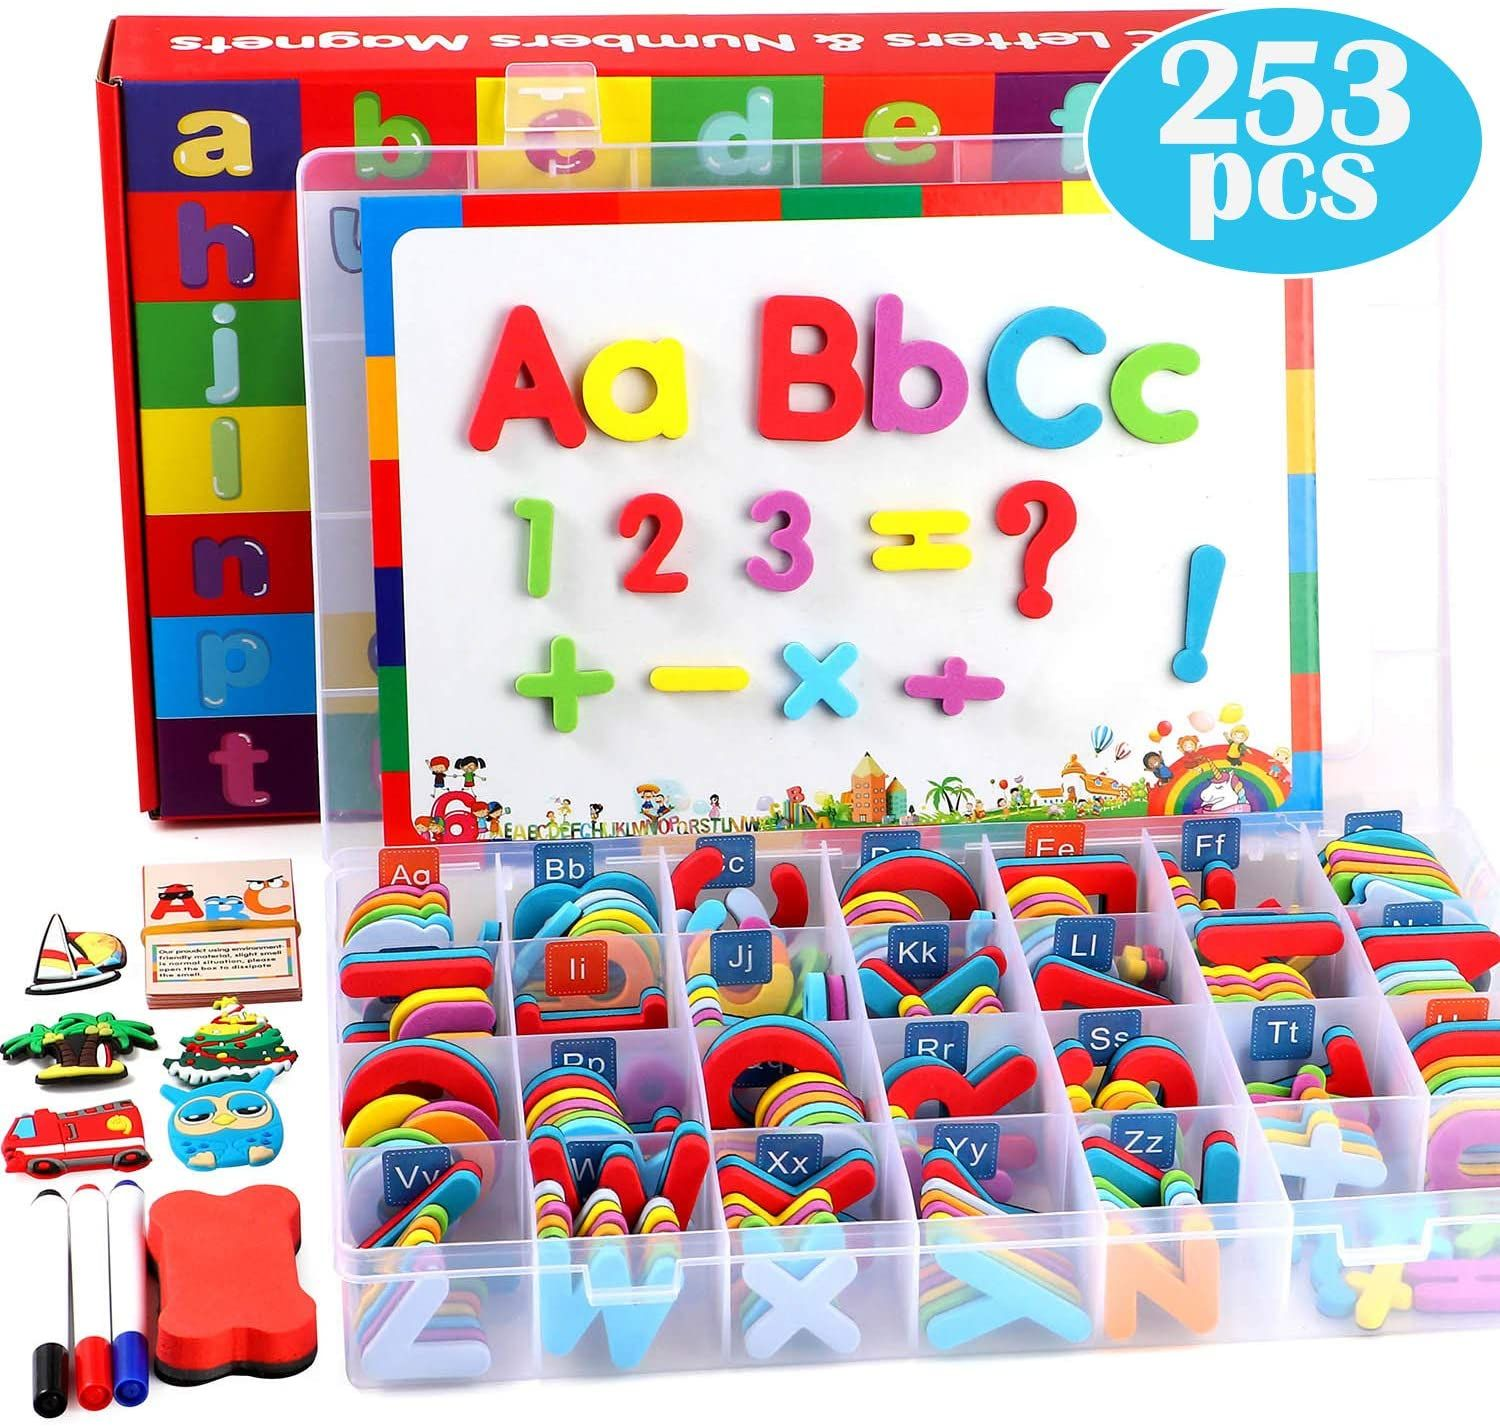 253 Pcs Magnetic Letters Numbers With Magnetic Board And Storage Box Foam Alphabet Abc Refrigera In 2020 Educational Toys For Kids Letters And Numbers Magnetic Letters